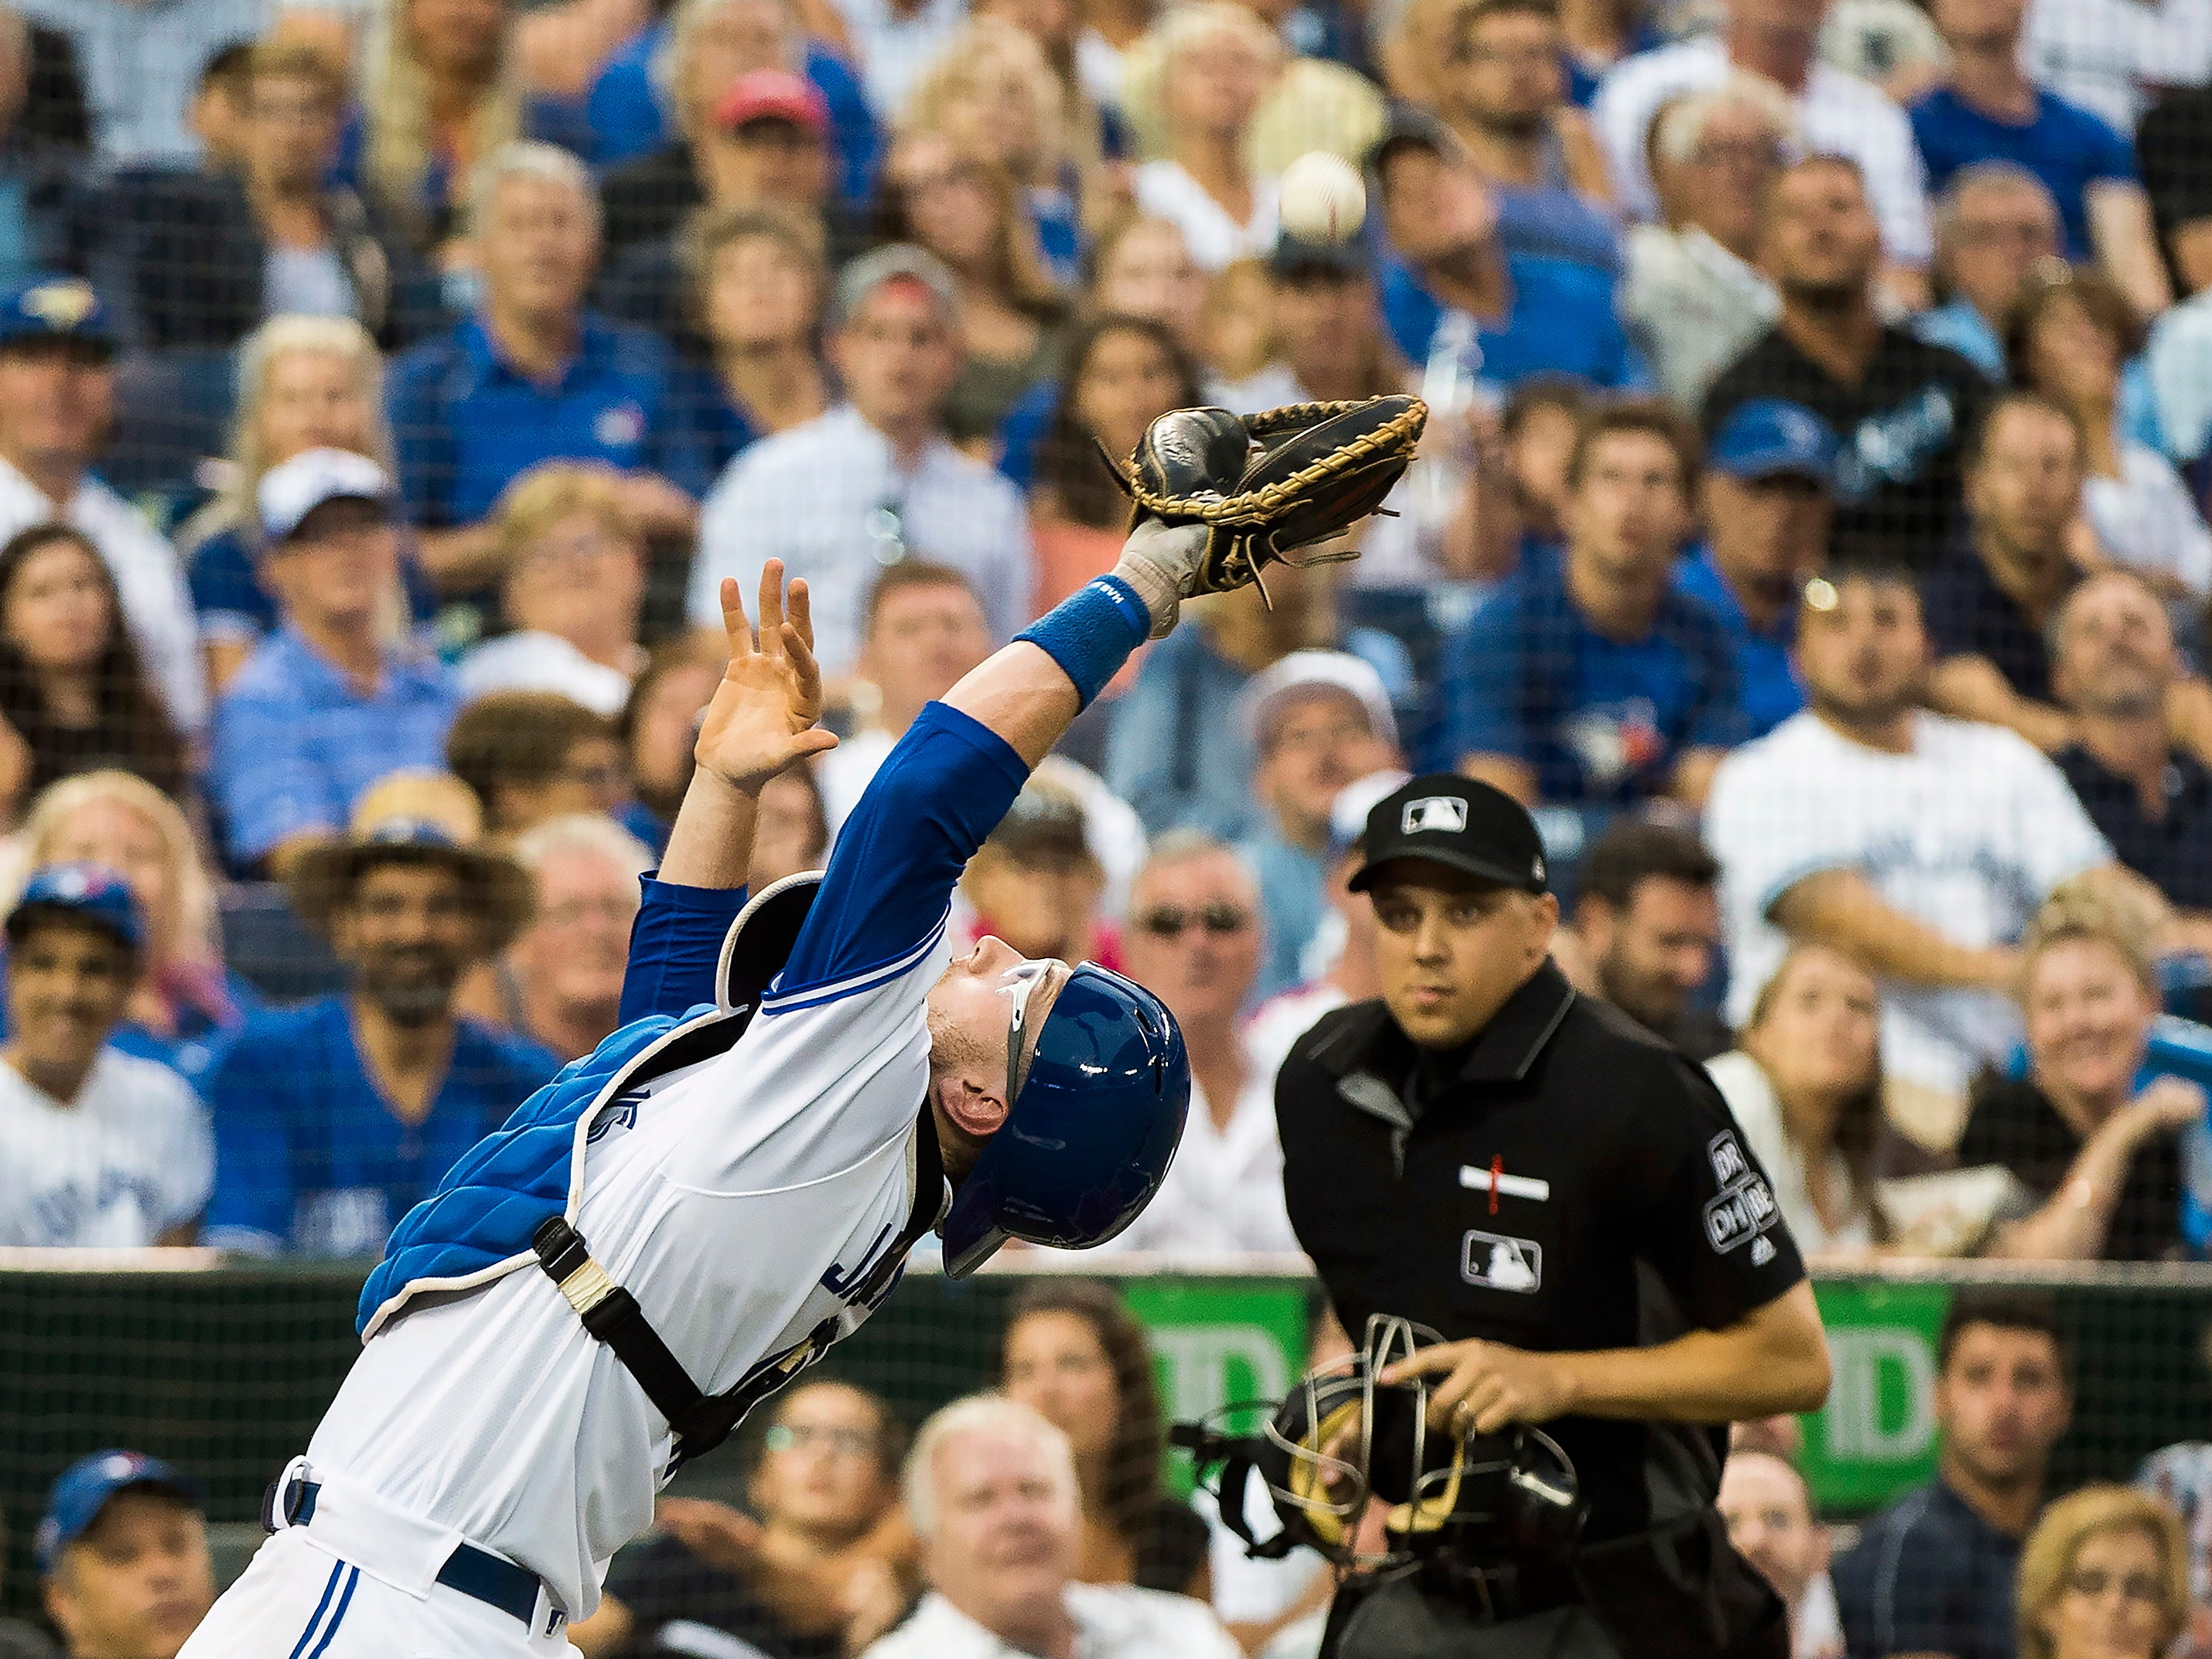 Toronto Blue Jays catcher Danny Jansen (9) makes a pop up catch behind home plate to out Baltimore Orioles third baseman Renato Nunez (39) during third inning baseball action in Toronto on Monday, Aug. 20, 2018. (Nathan Denette/The Canadian Press via AP)